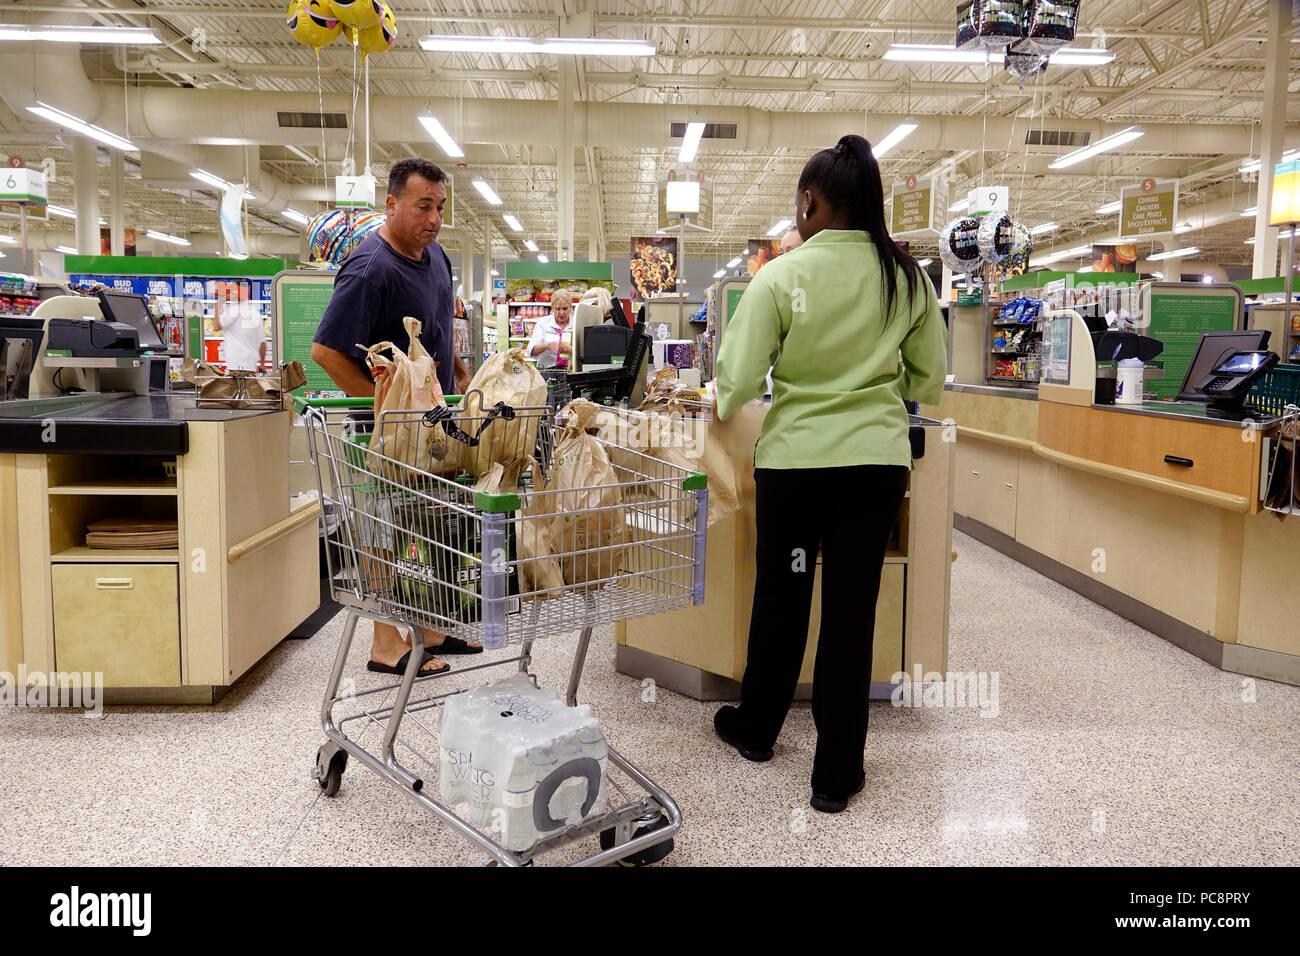 Florida Pompano Beach Publix grocery store supermarket food interior inside shopping checkout line queue cashier customer man Black woman employee - Stock Image